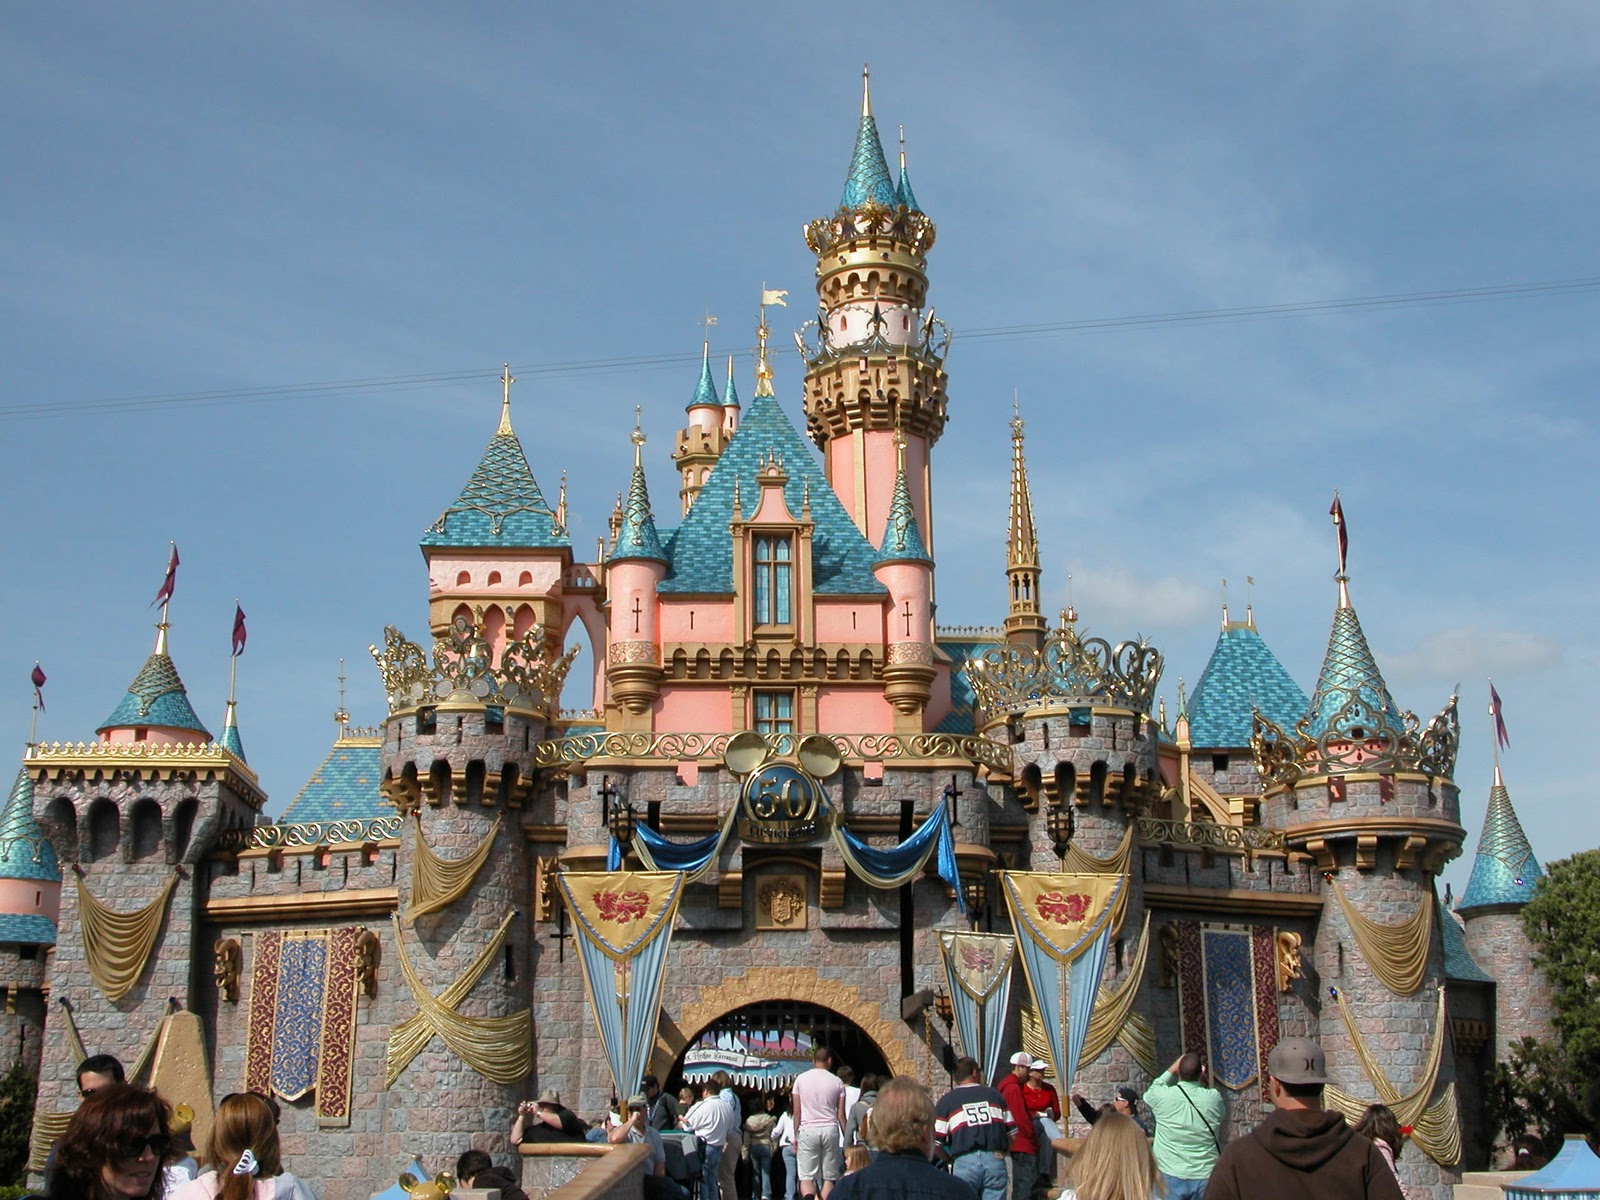 Disney Only Uses Two Princesses Castles They All Look A Little Diffe But Sleeping Beauty And Cinderella Are The In Parks